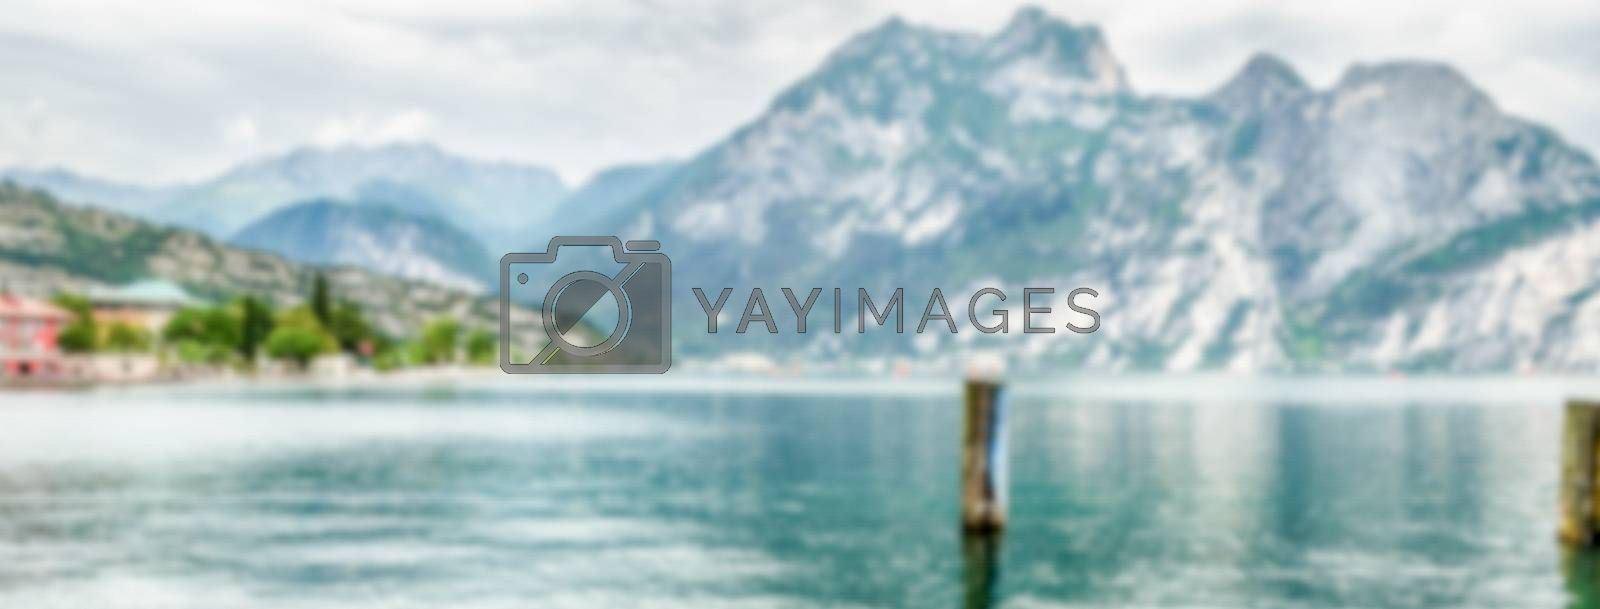 Defocused background over the Lake Garda from the town of Torbole, Italy. Intentionally blurred post production for bokeh effect